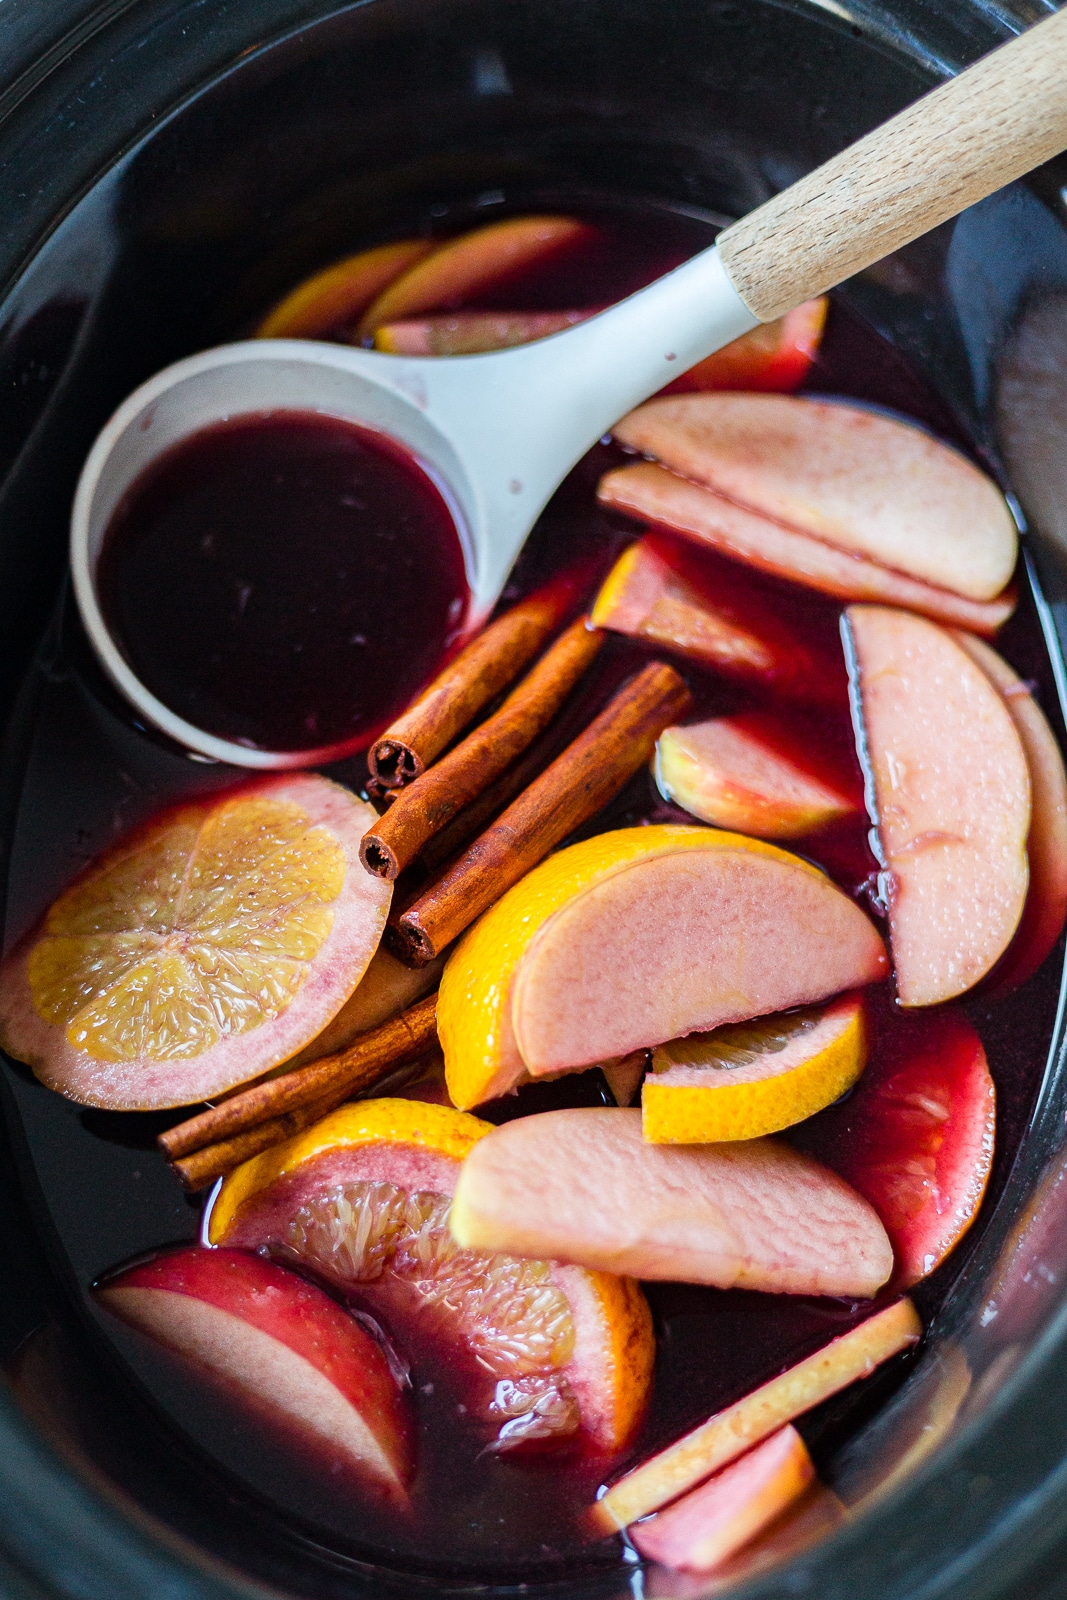 winter sangria recipe in a crock pot with sliced apples, oranges and cinnamon sticks